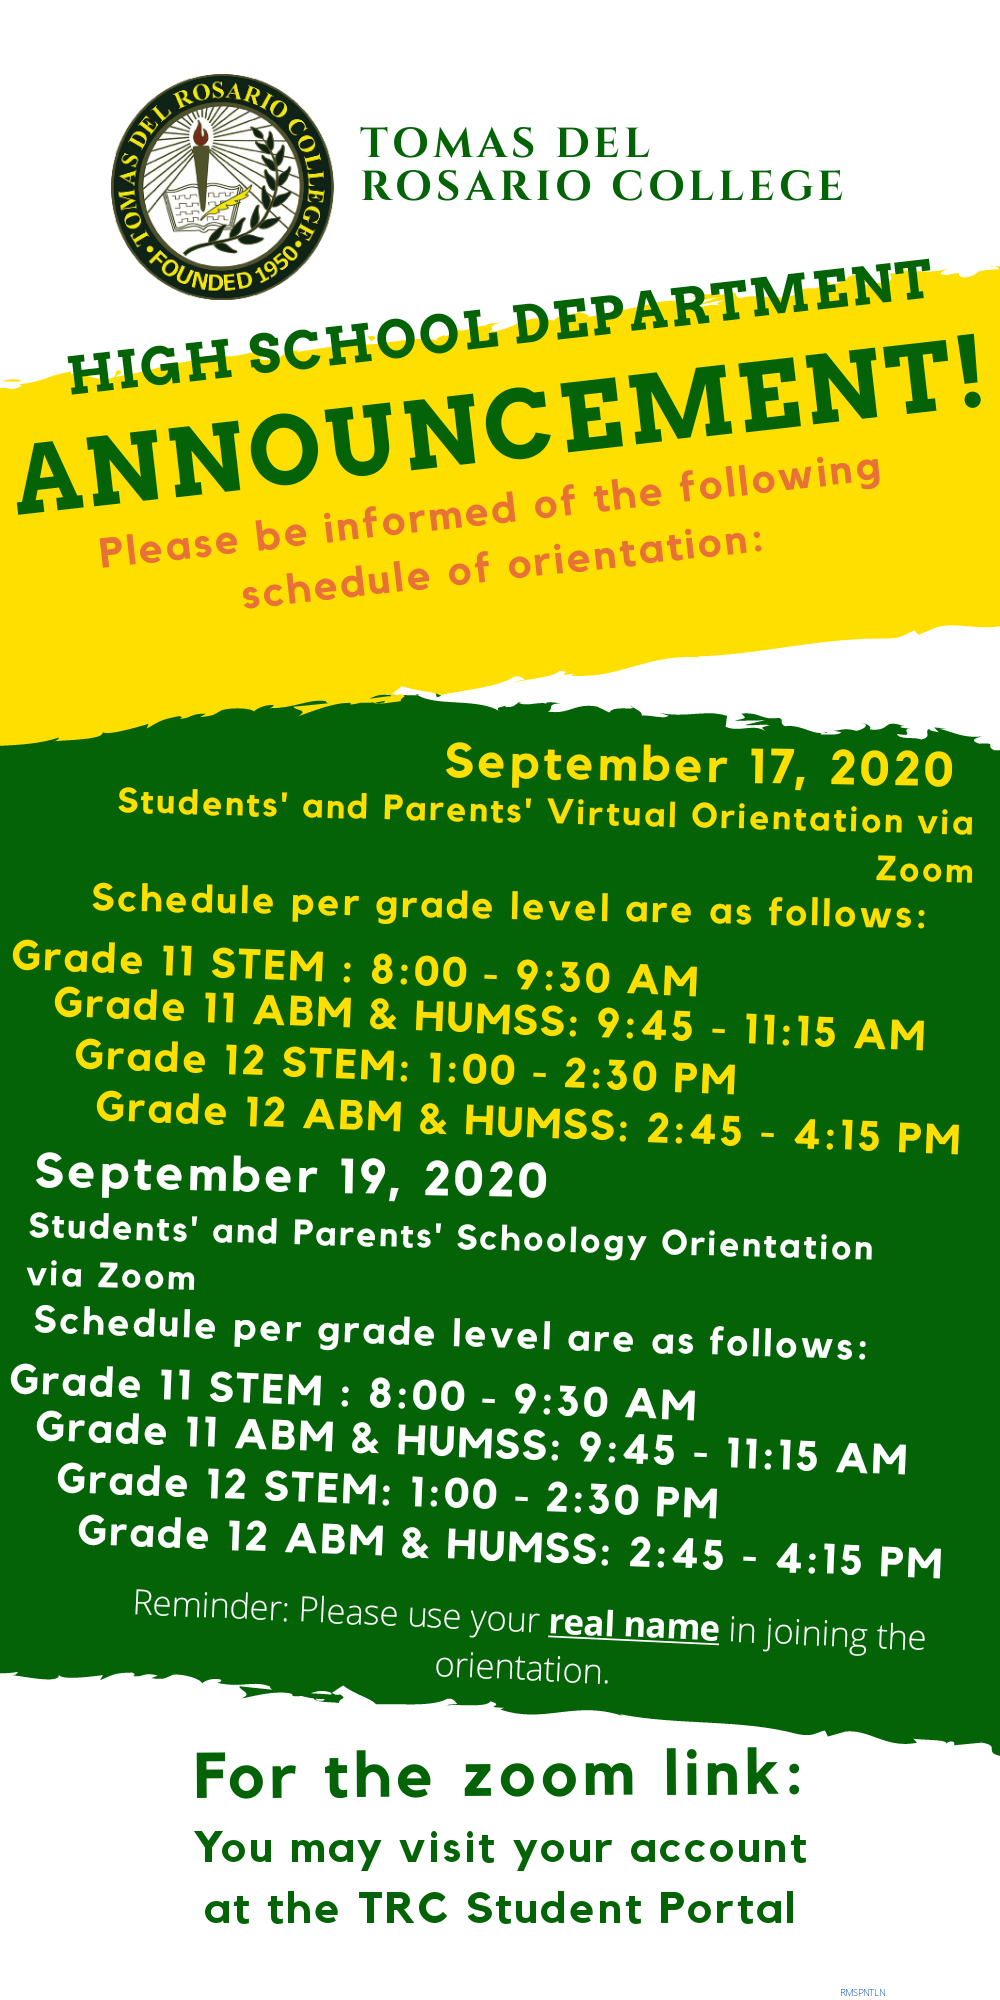 Students' and Parents' Virtual Orientation via Zoom (SENIOR HIGH SCHOOL)